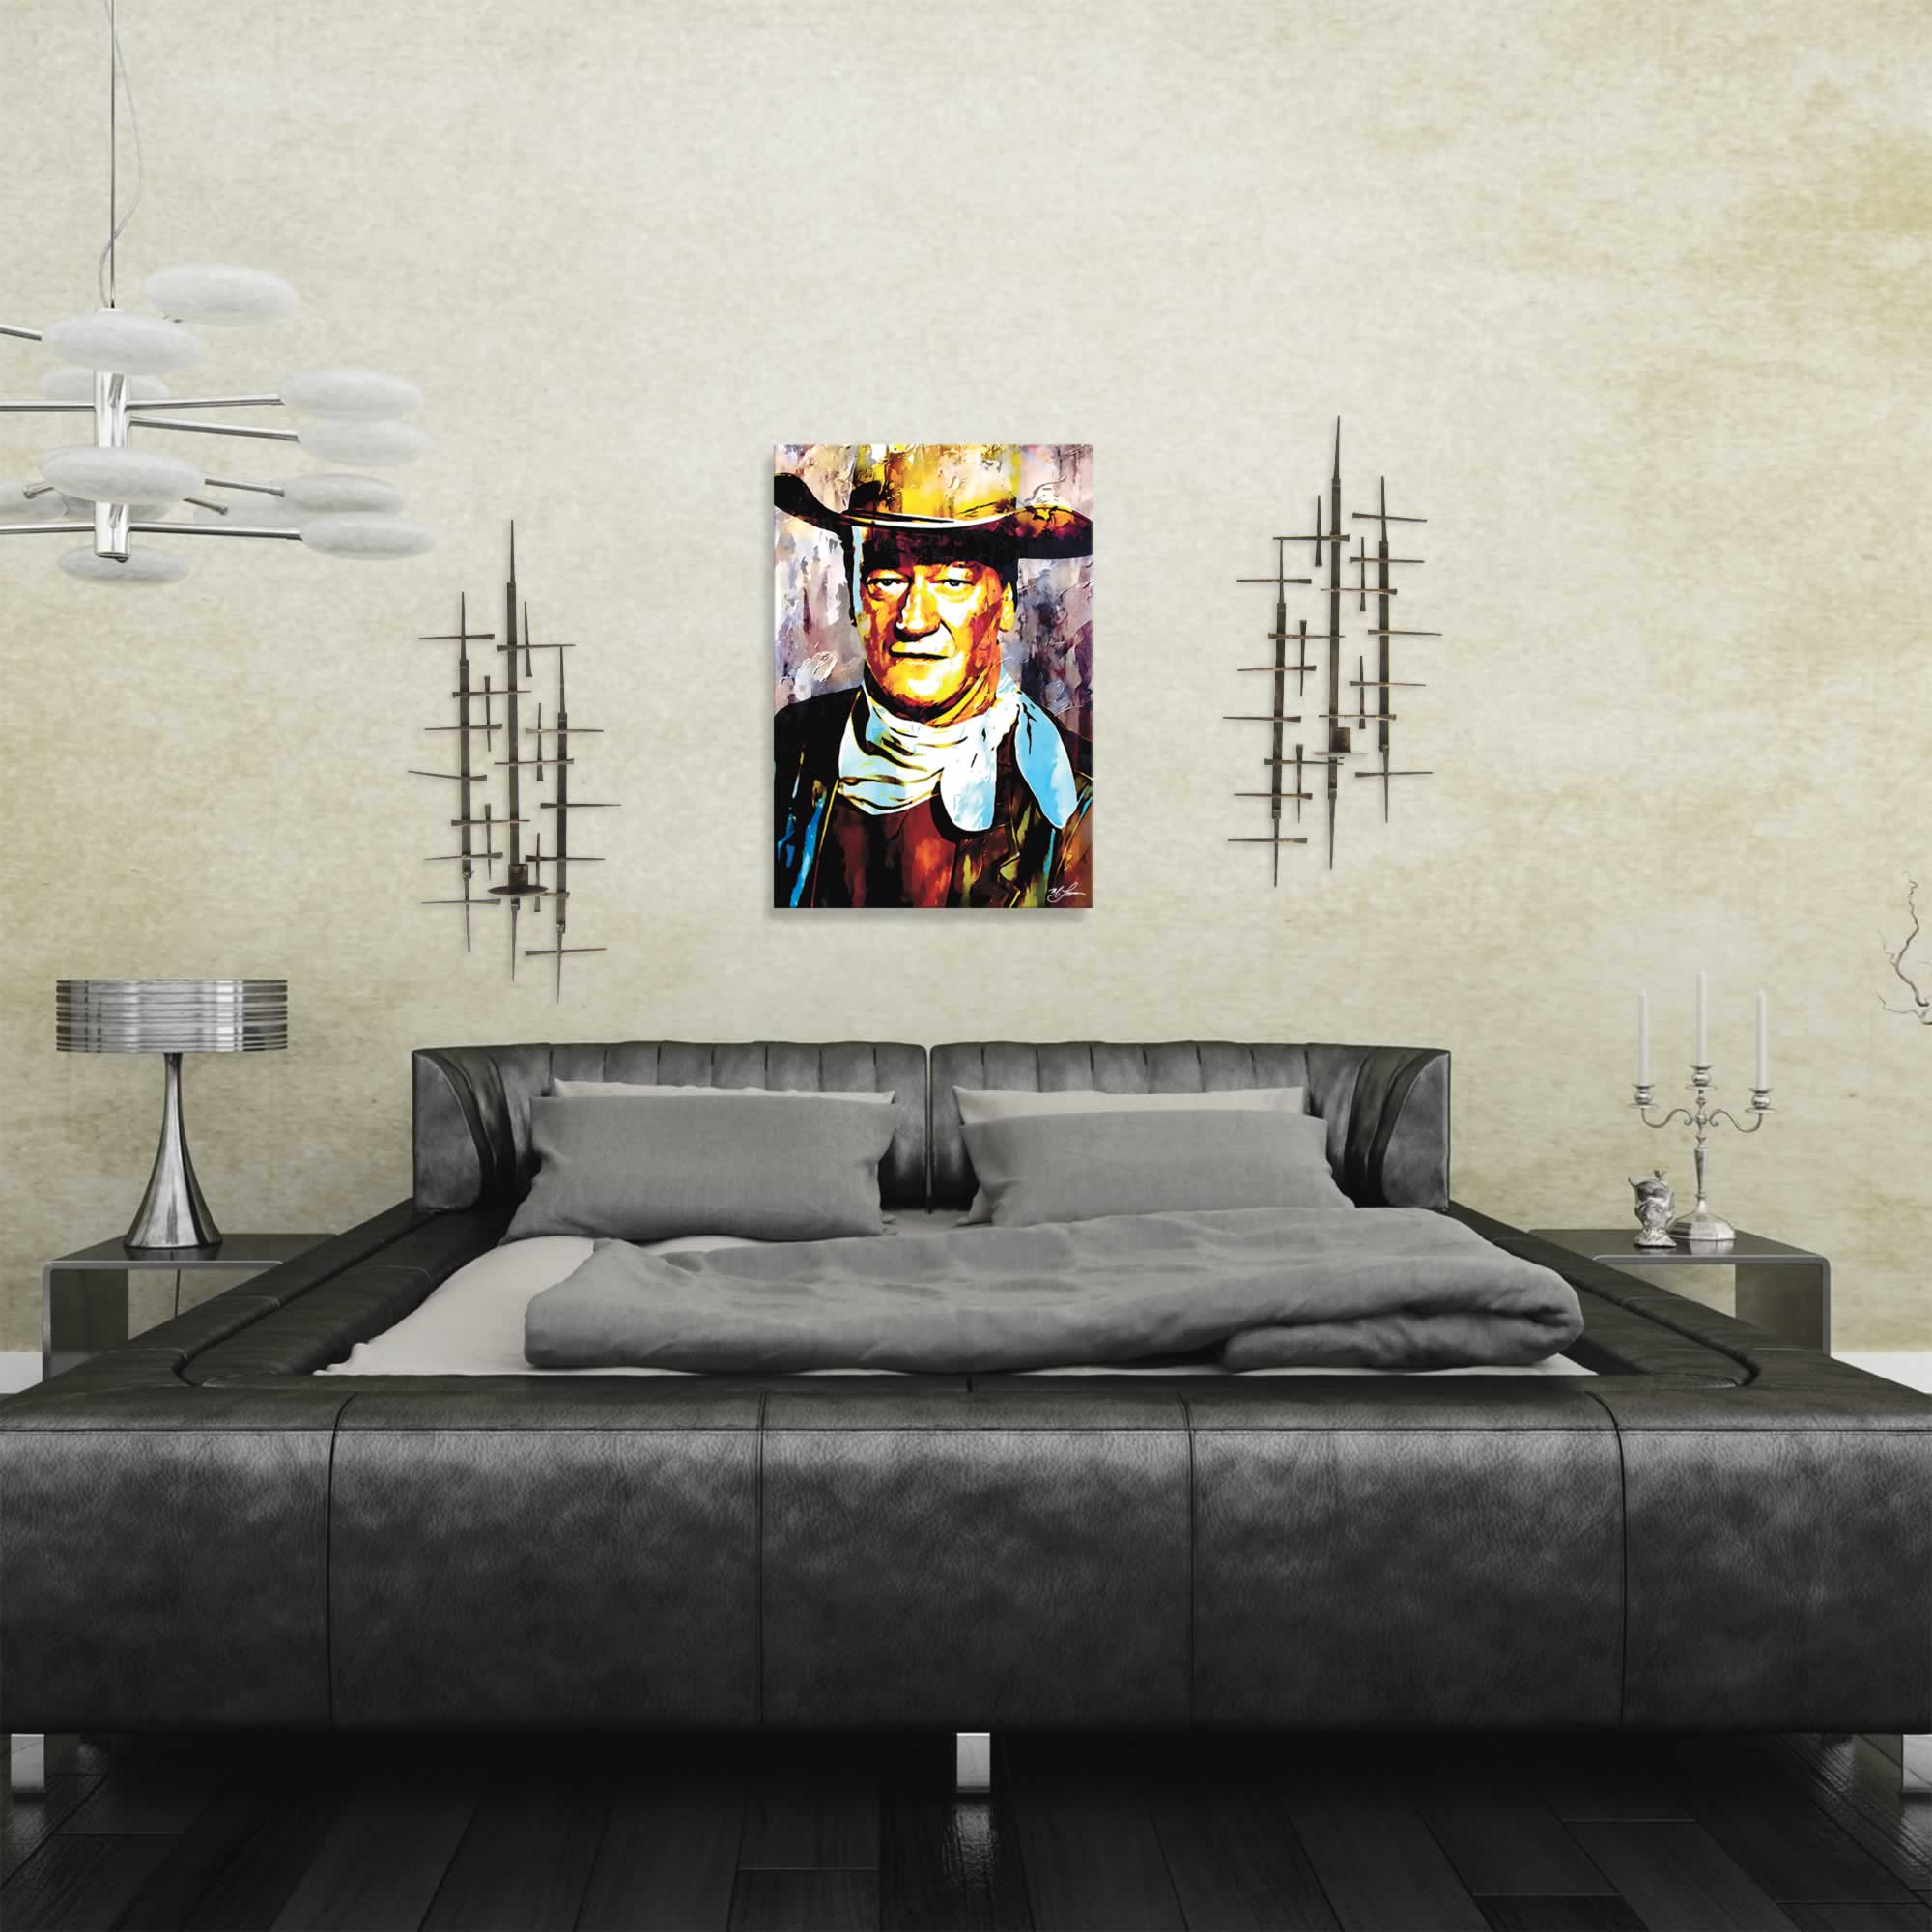 John Wayne Gallant Duke | Pop Art Painting by Mark Lewis, Signed & Numbered Limited Edition - ML0020